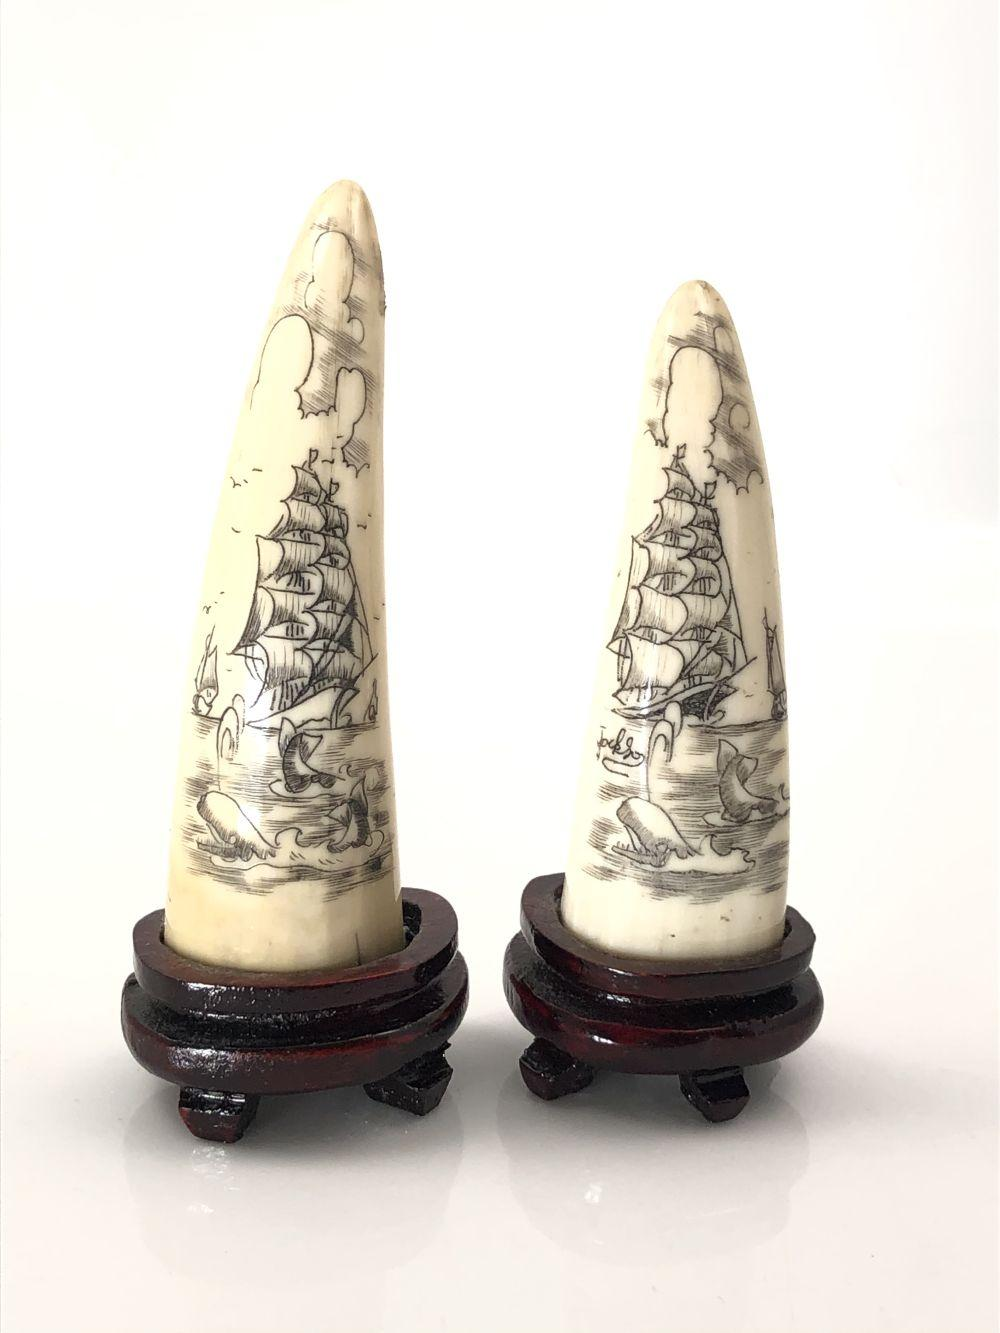 Pair of Carved Ivory Tusks with Sailboat Scene with Stands